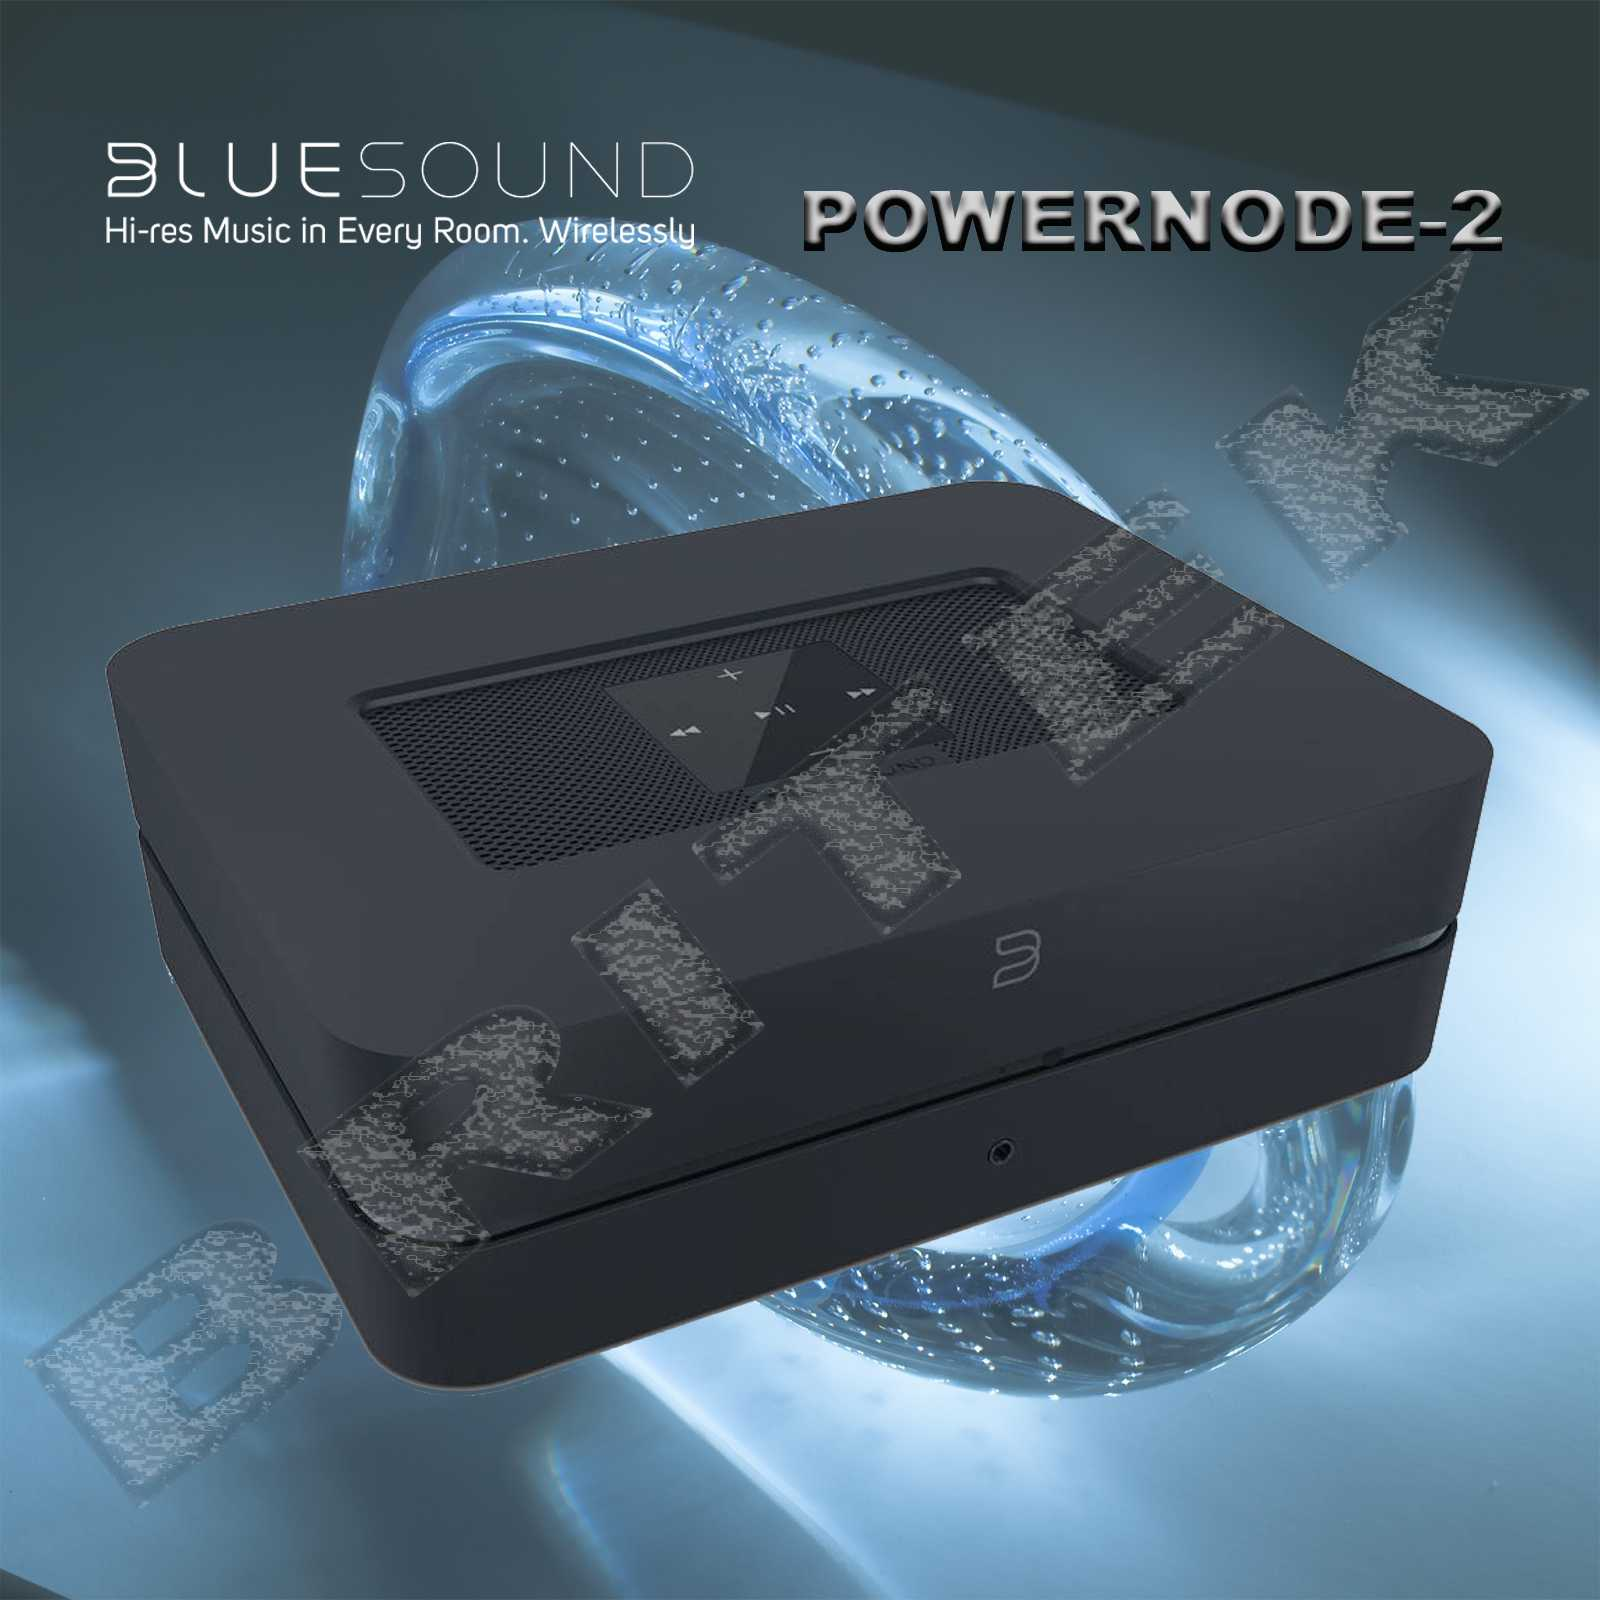 Bluesound POWERNODE-2